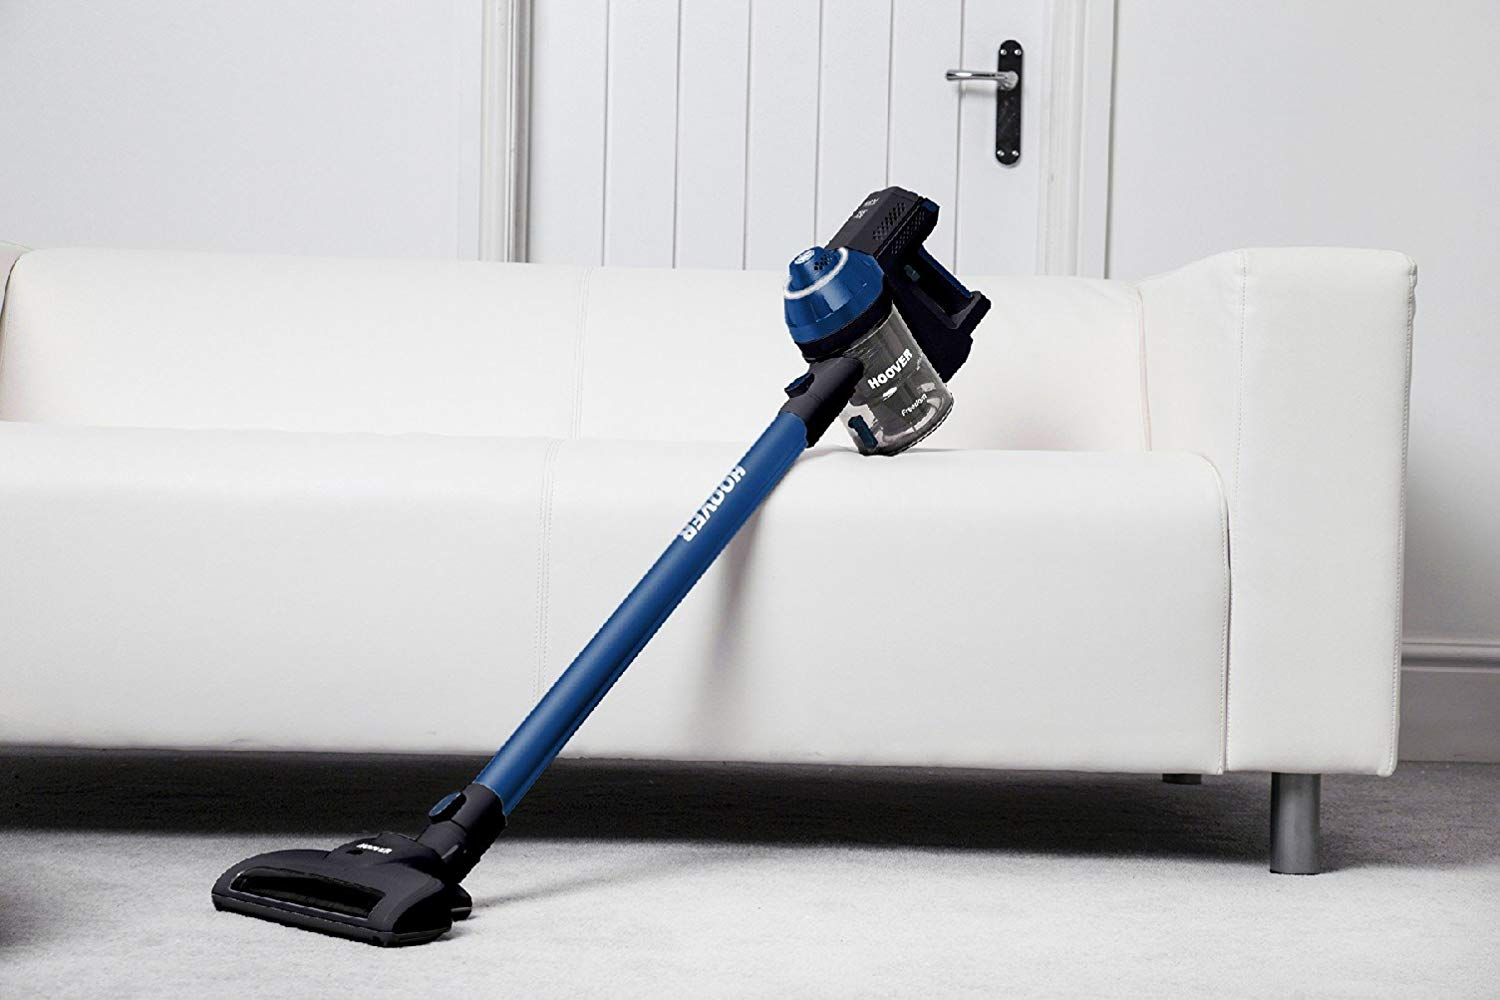 Hoover Freedom Lite 2in1 Cordless Stick Vacuum Cleaner [FD22L], Lightweight, Blue for £60.67